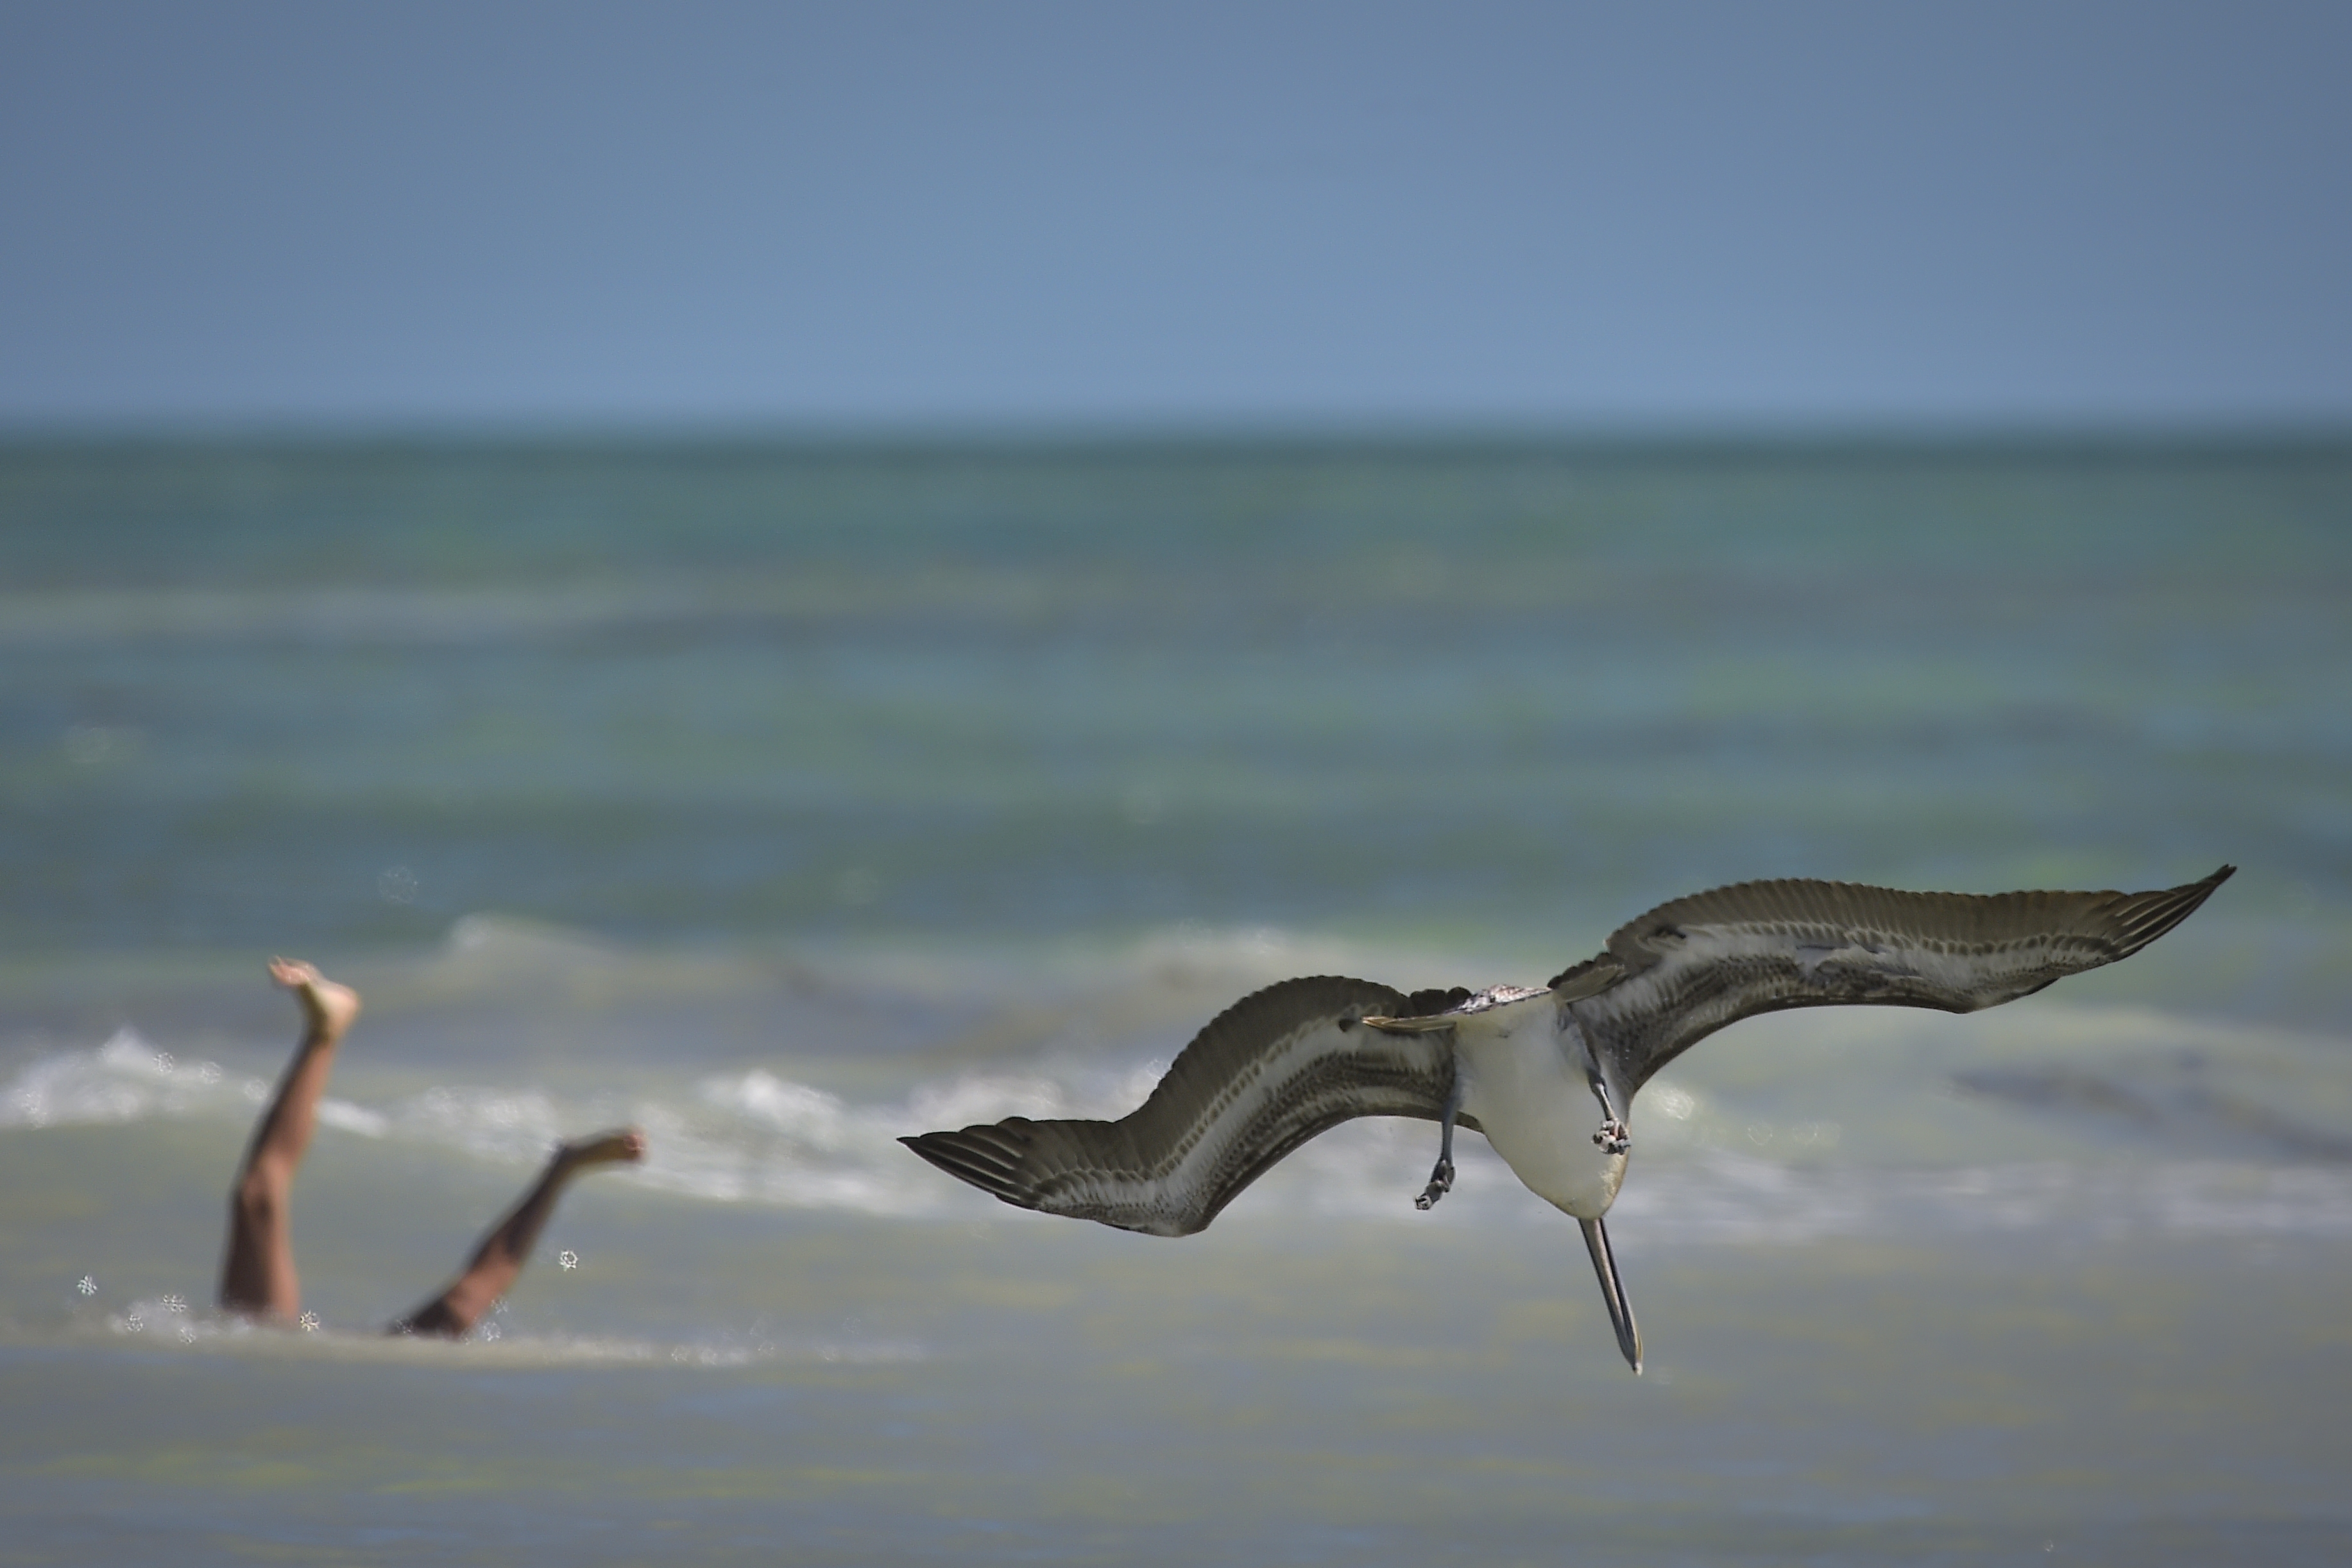 Sharing the beach with wildlife,